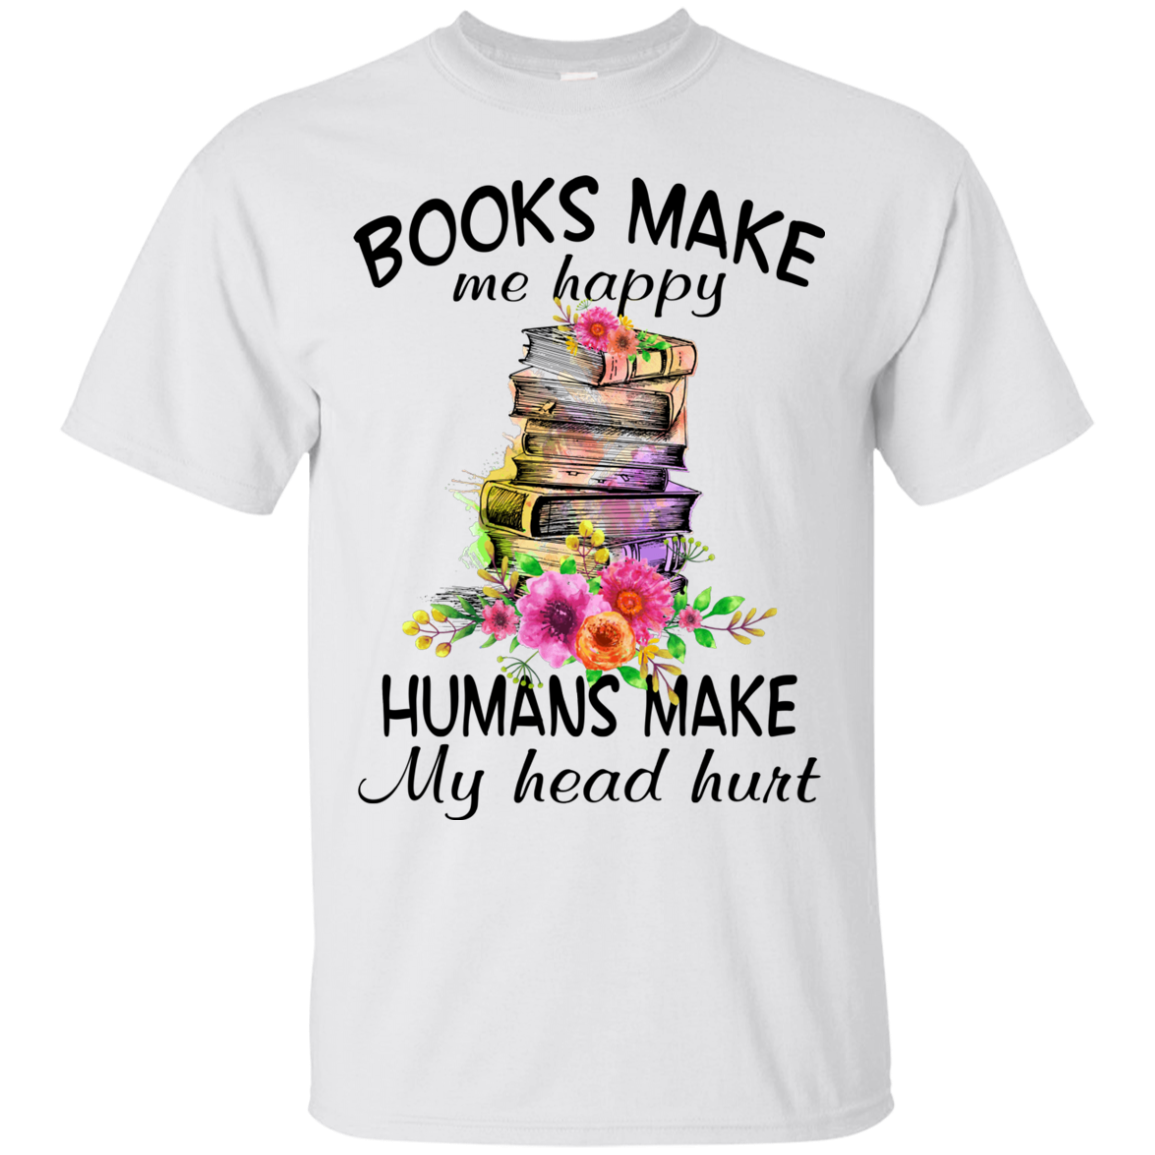 Book Hobbies Reading T shirts Books Make Me Happy Hoodies Sweatshirts TH